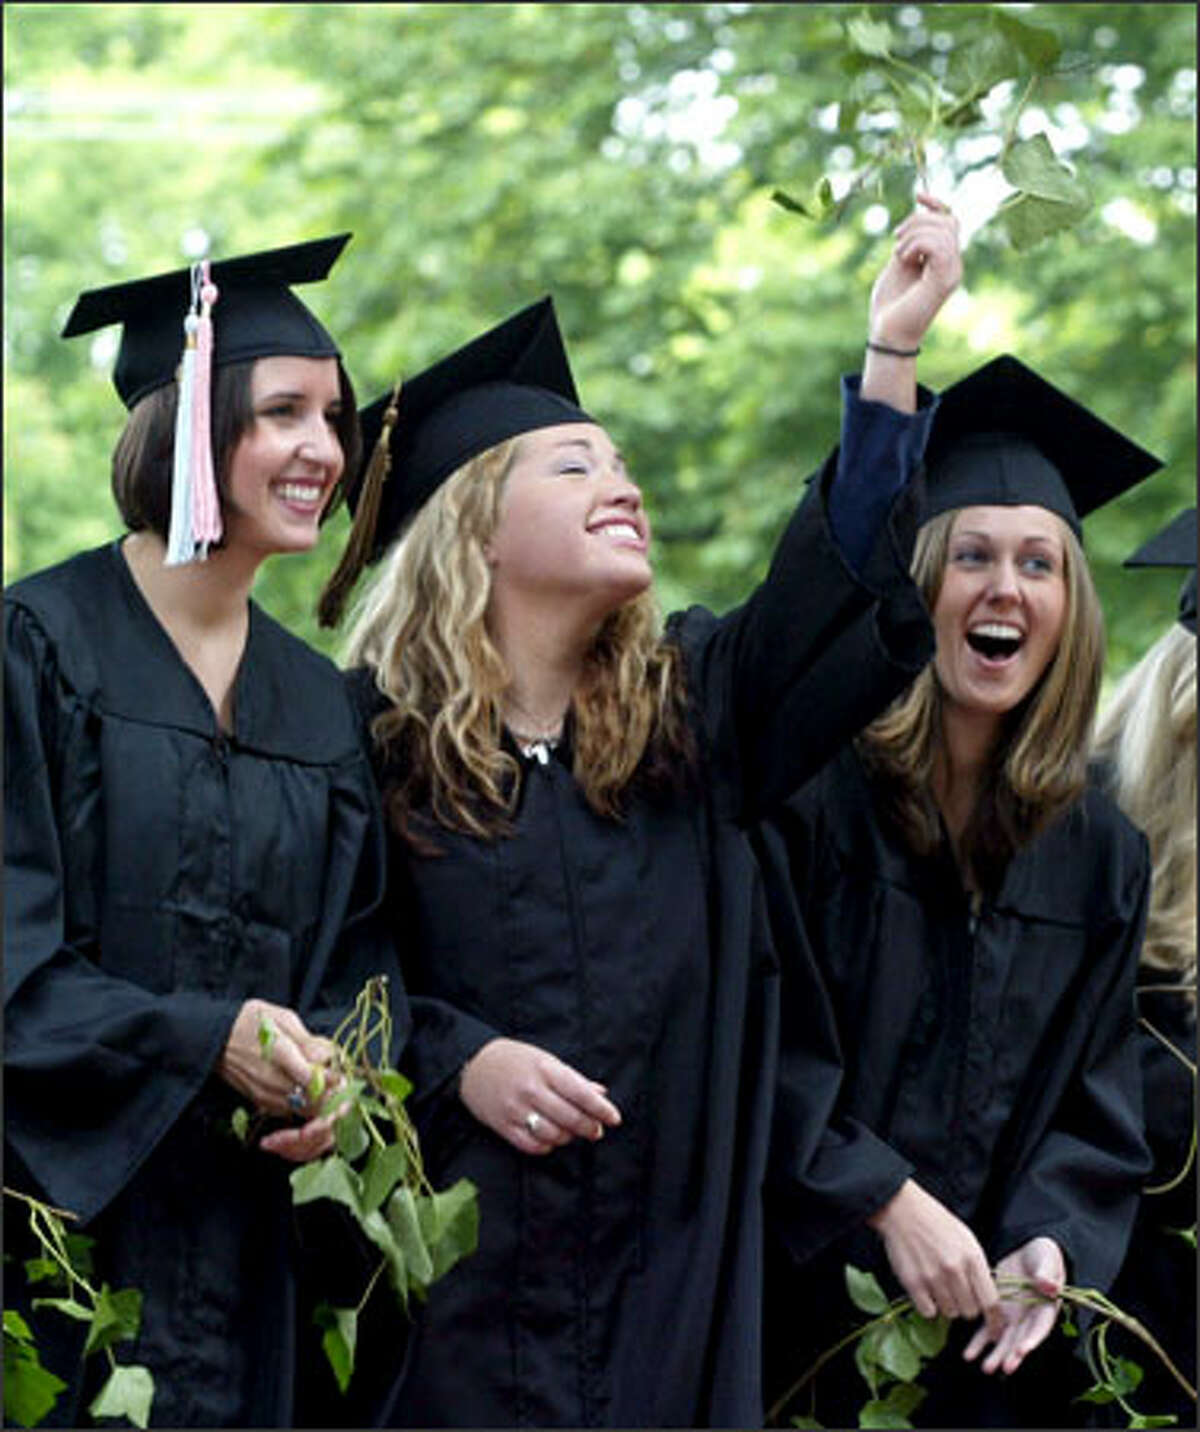 Signifying both the student's tie to Seattle Pacific University and the independence that comes with graduation, Jessika Flood holds a sprig of ivy in the air after a traditional ivy-cutting ceremony on campus. She celebrated the occasion with friends Carly Ferguson, left, and Megan McDowell, right.